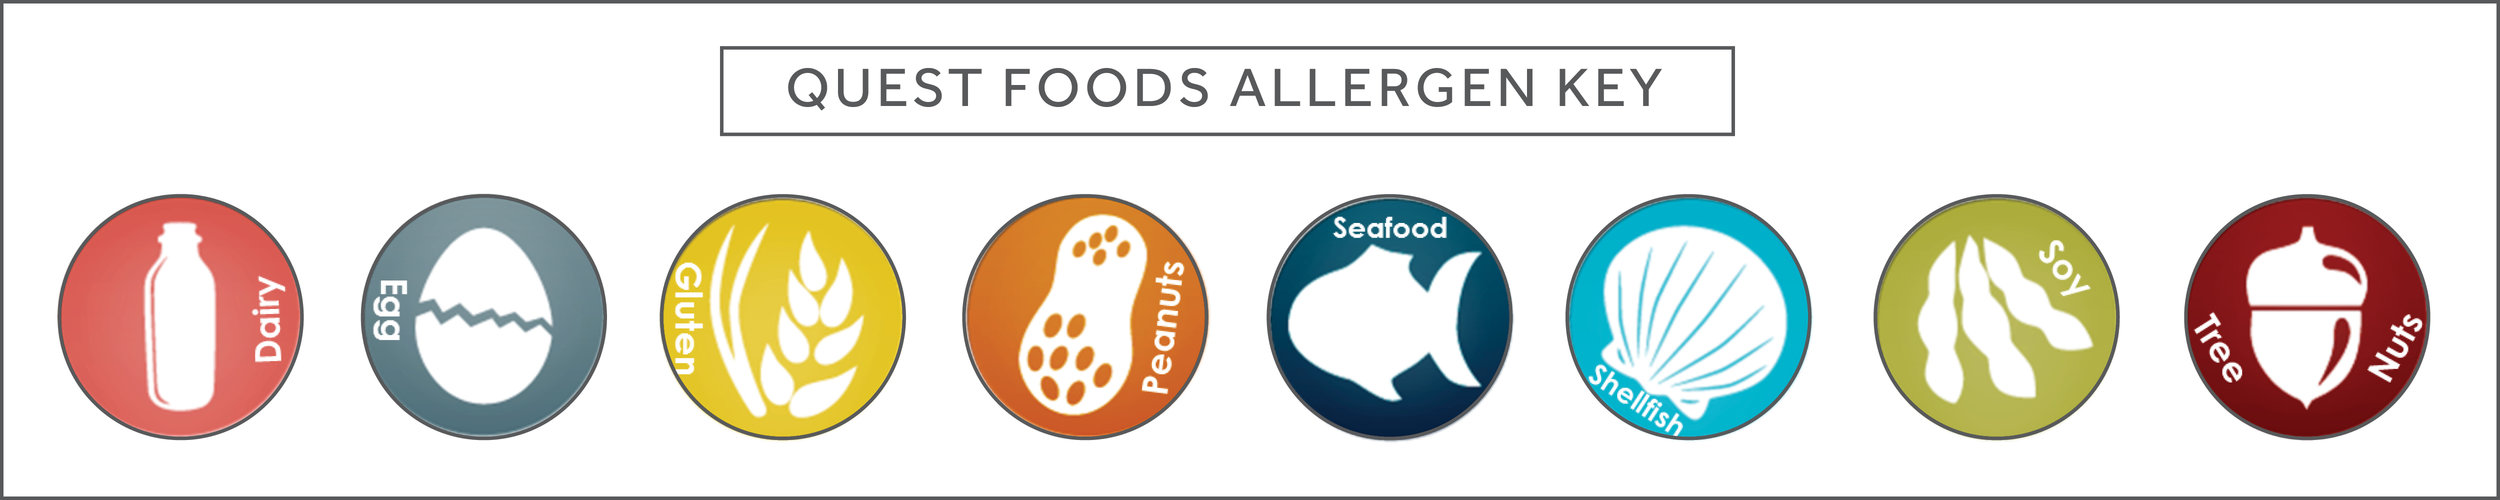 Allergies Graphic for website.jpg